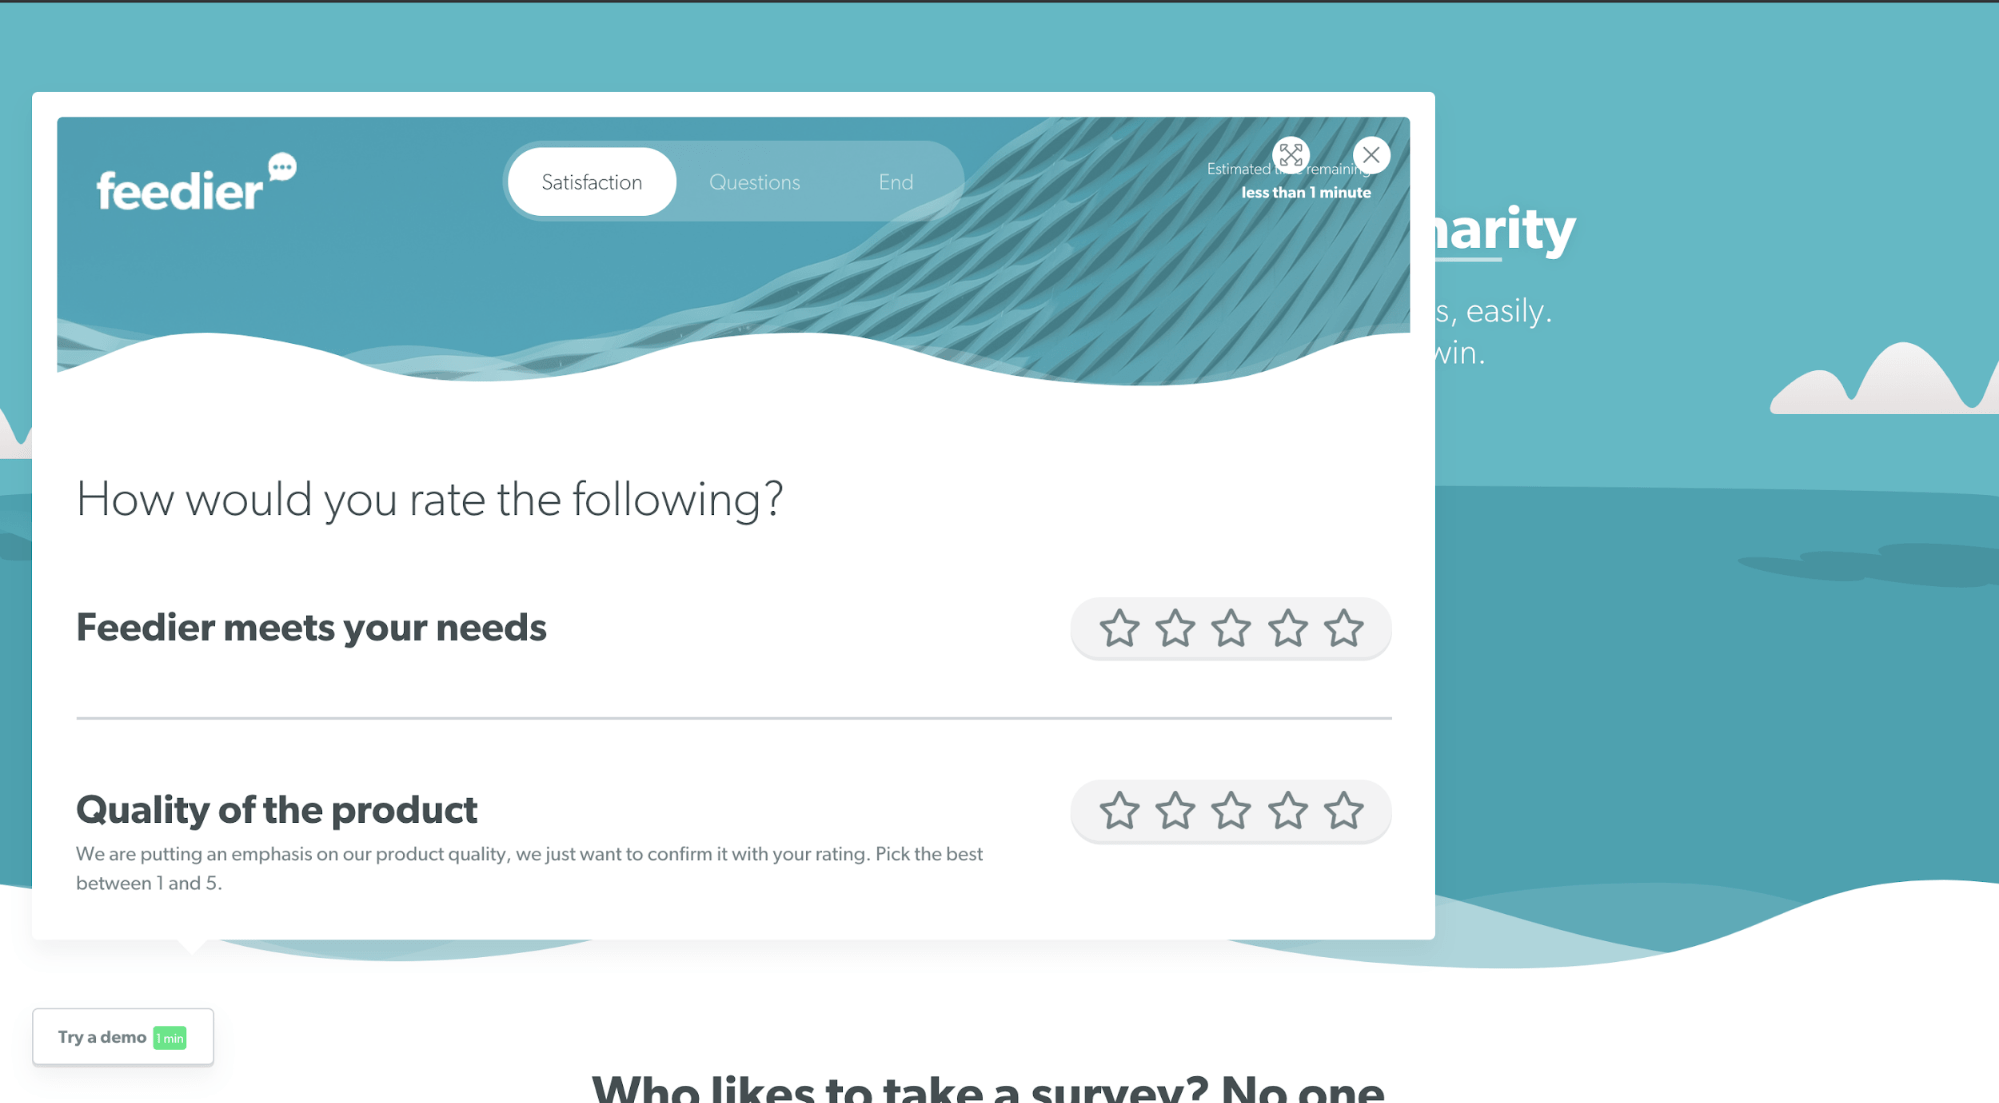 Feedback requested on the website, using Feedier's widget - for better product adoption